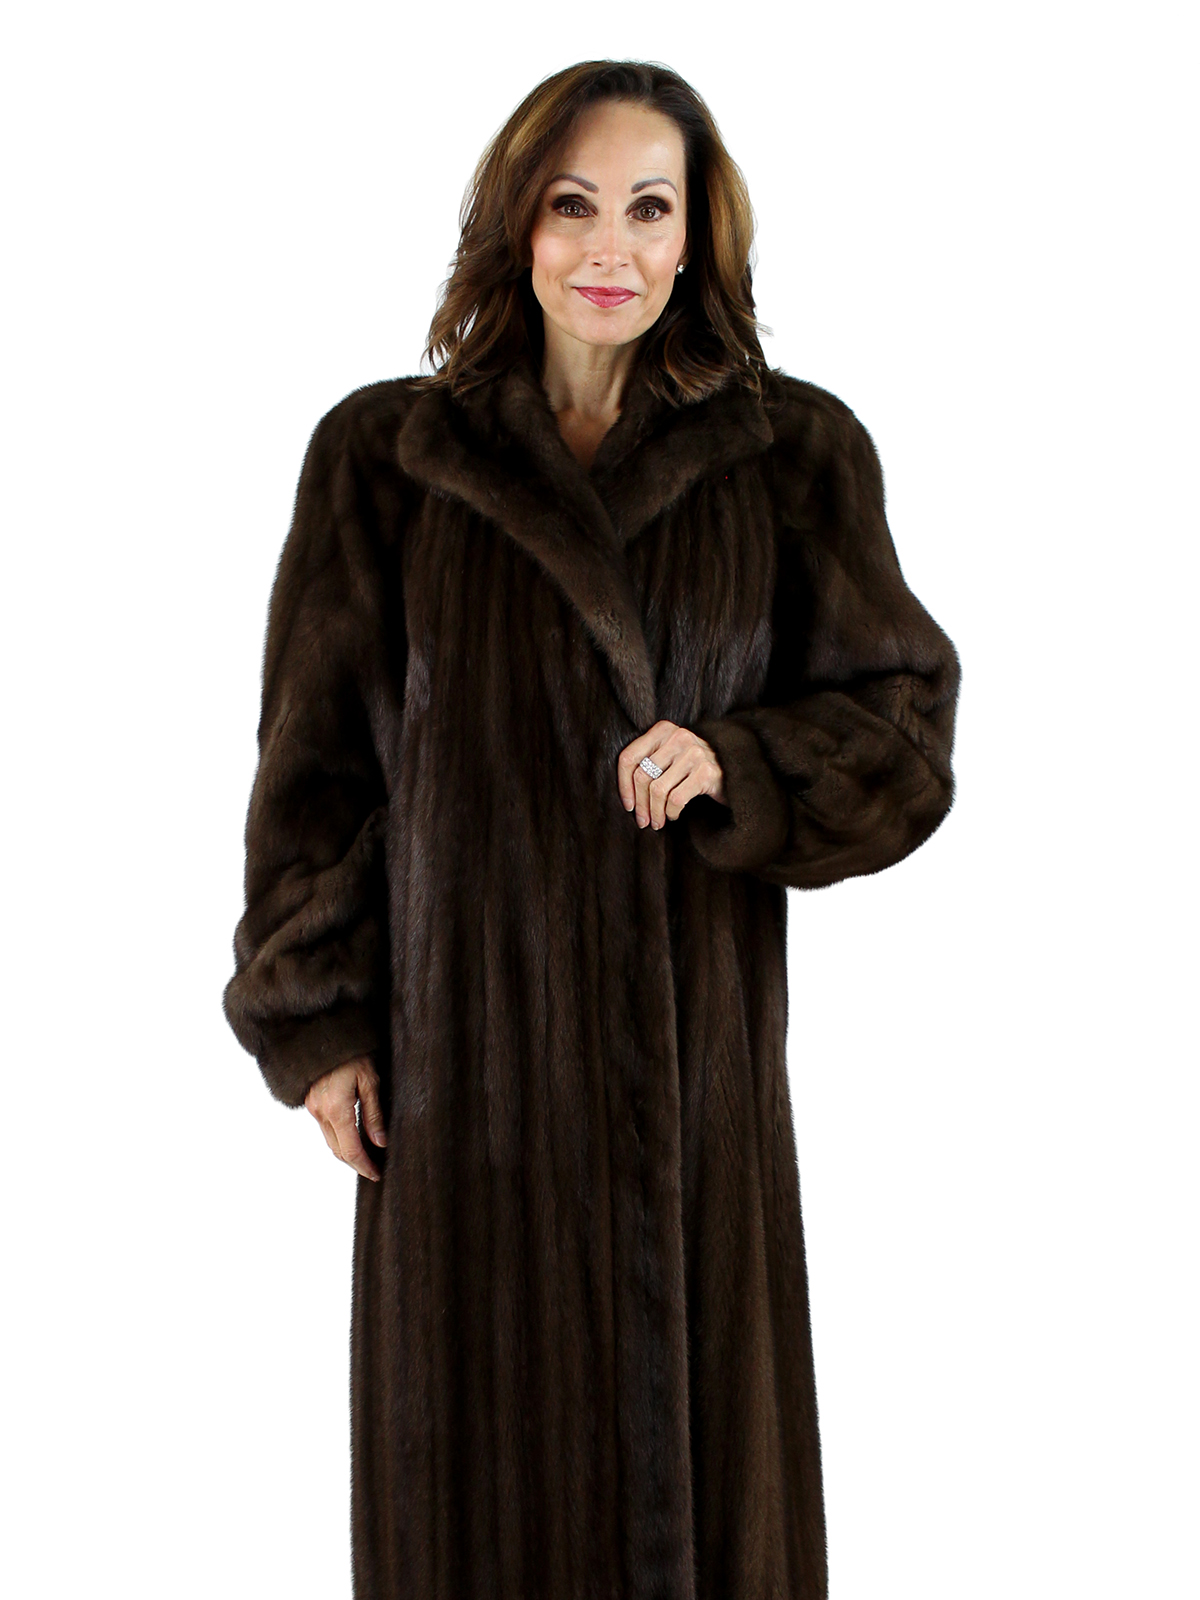 Mink Coat Value >> Lunaraine Female Mink Fur Coat - Women's Large | Estate Furs